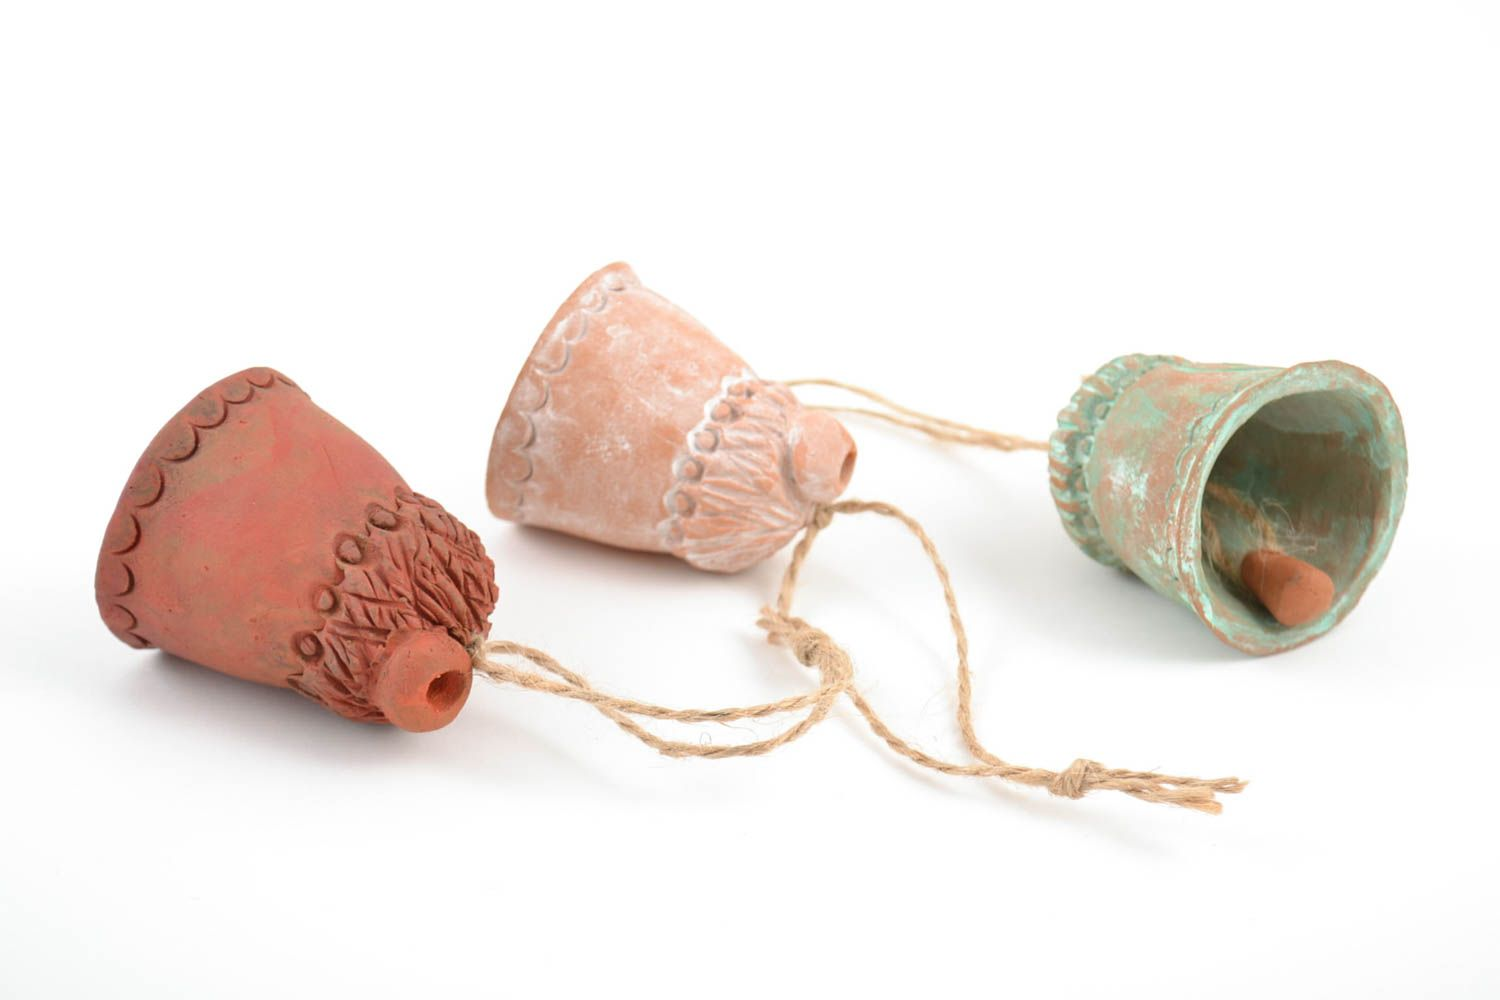 Set of 3 handmade decorative ceramic bells Houses of different colors with cords photo 4